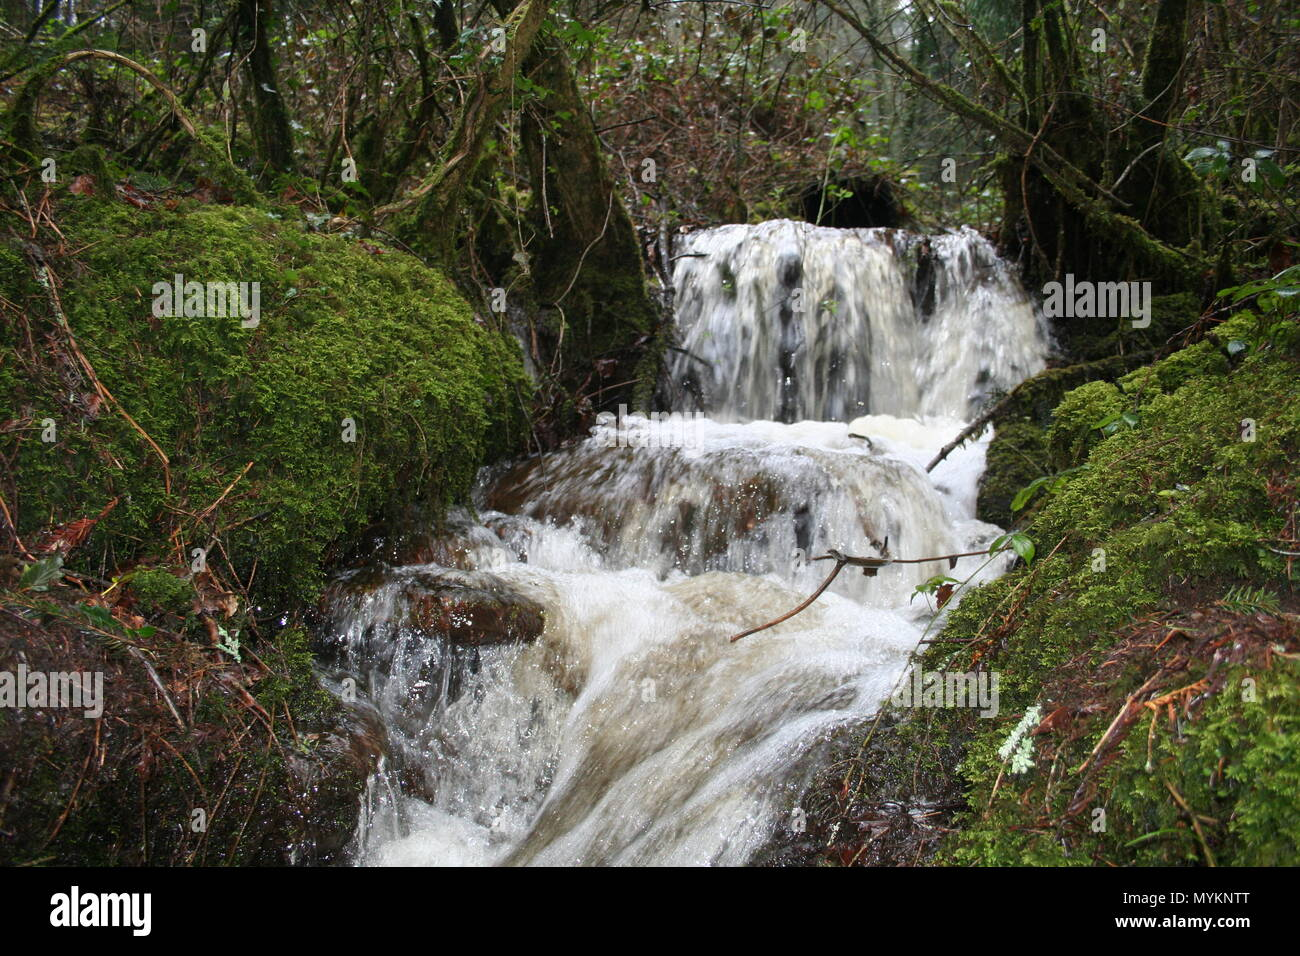 Waterfall in woodlands on the Brecon beacons national park, - Stock Image